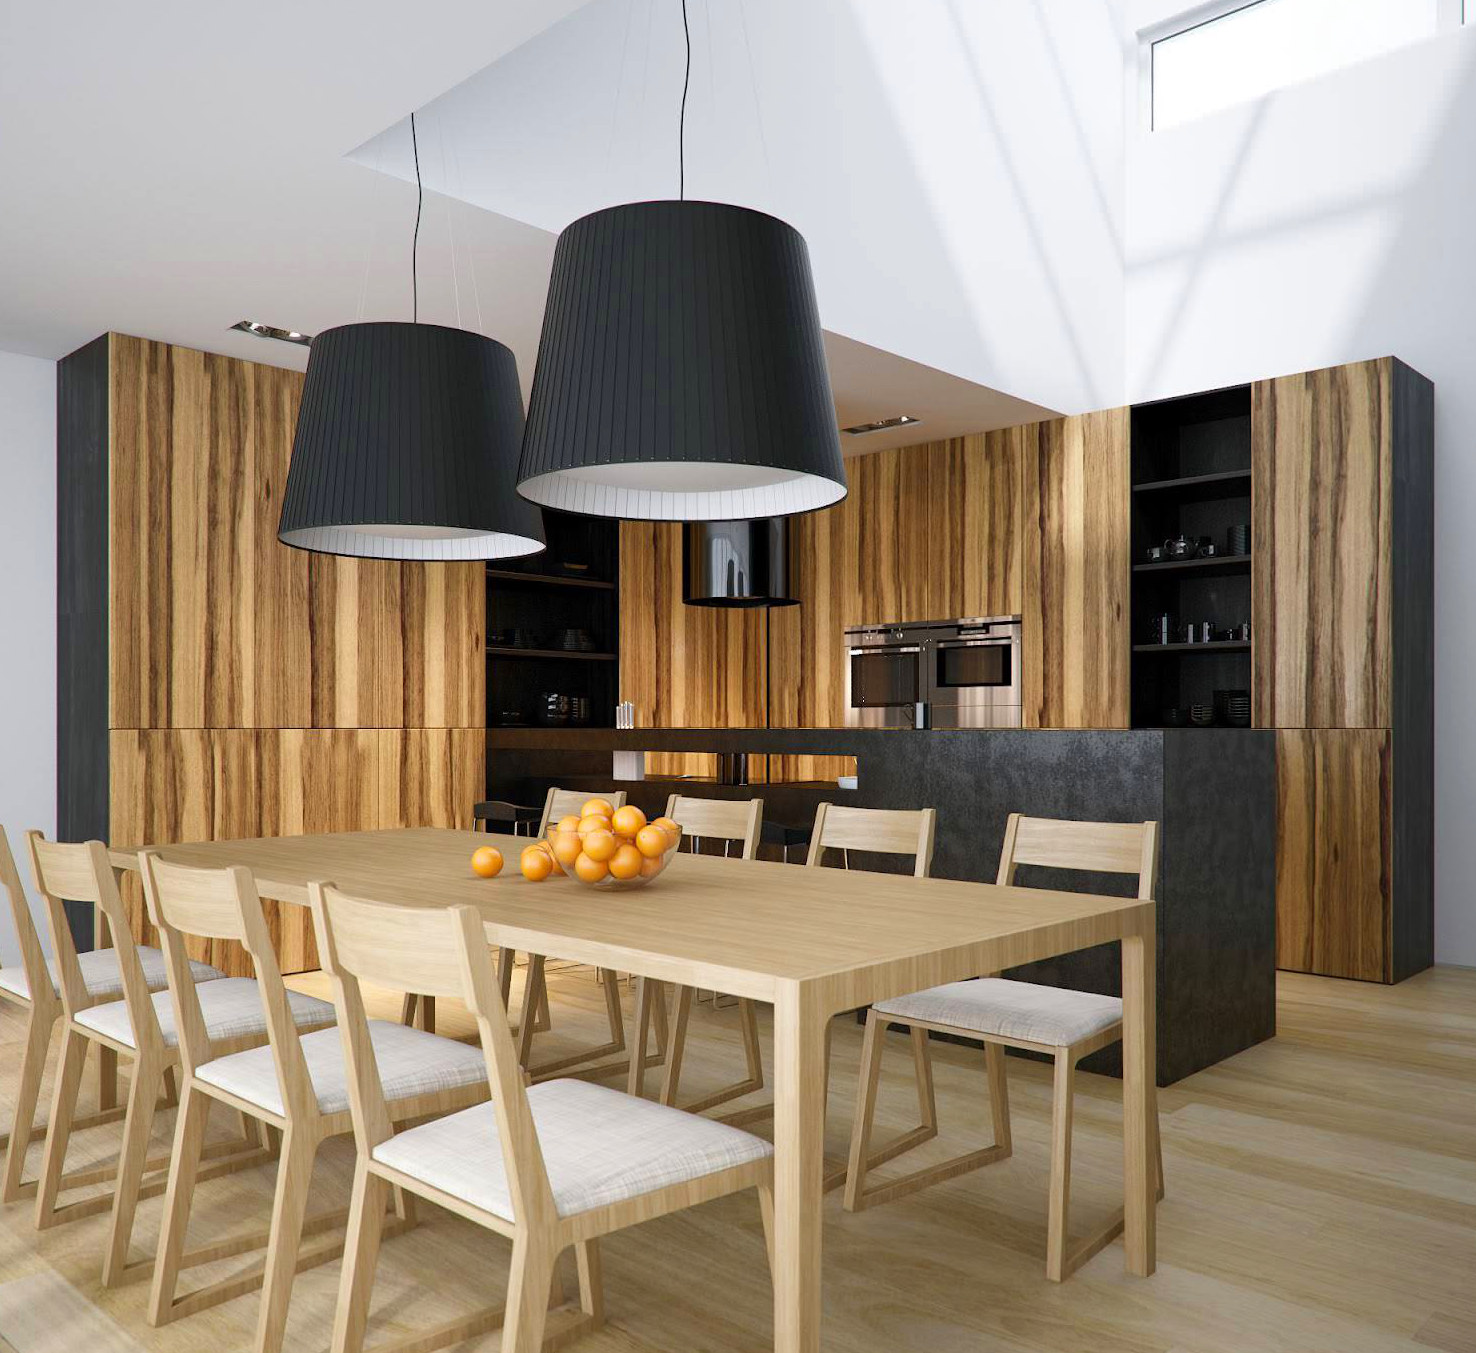 18 Spectacular Chandelier Designs That Make a Statement in Home Decor